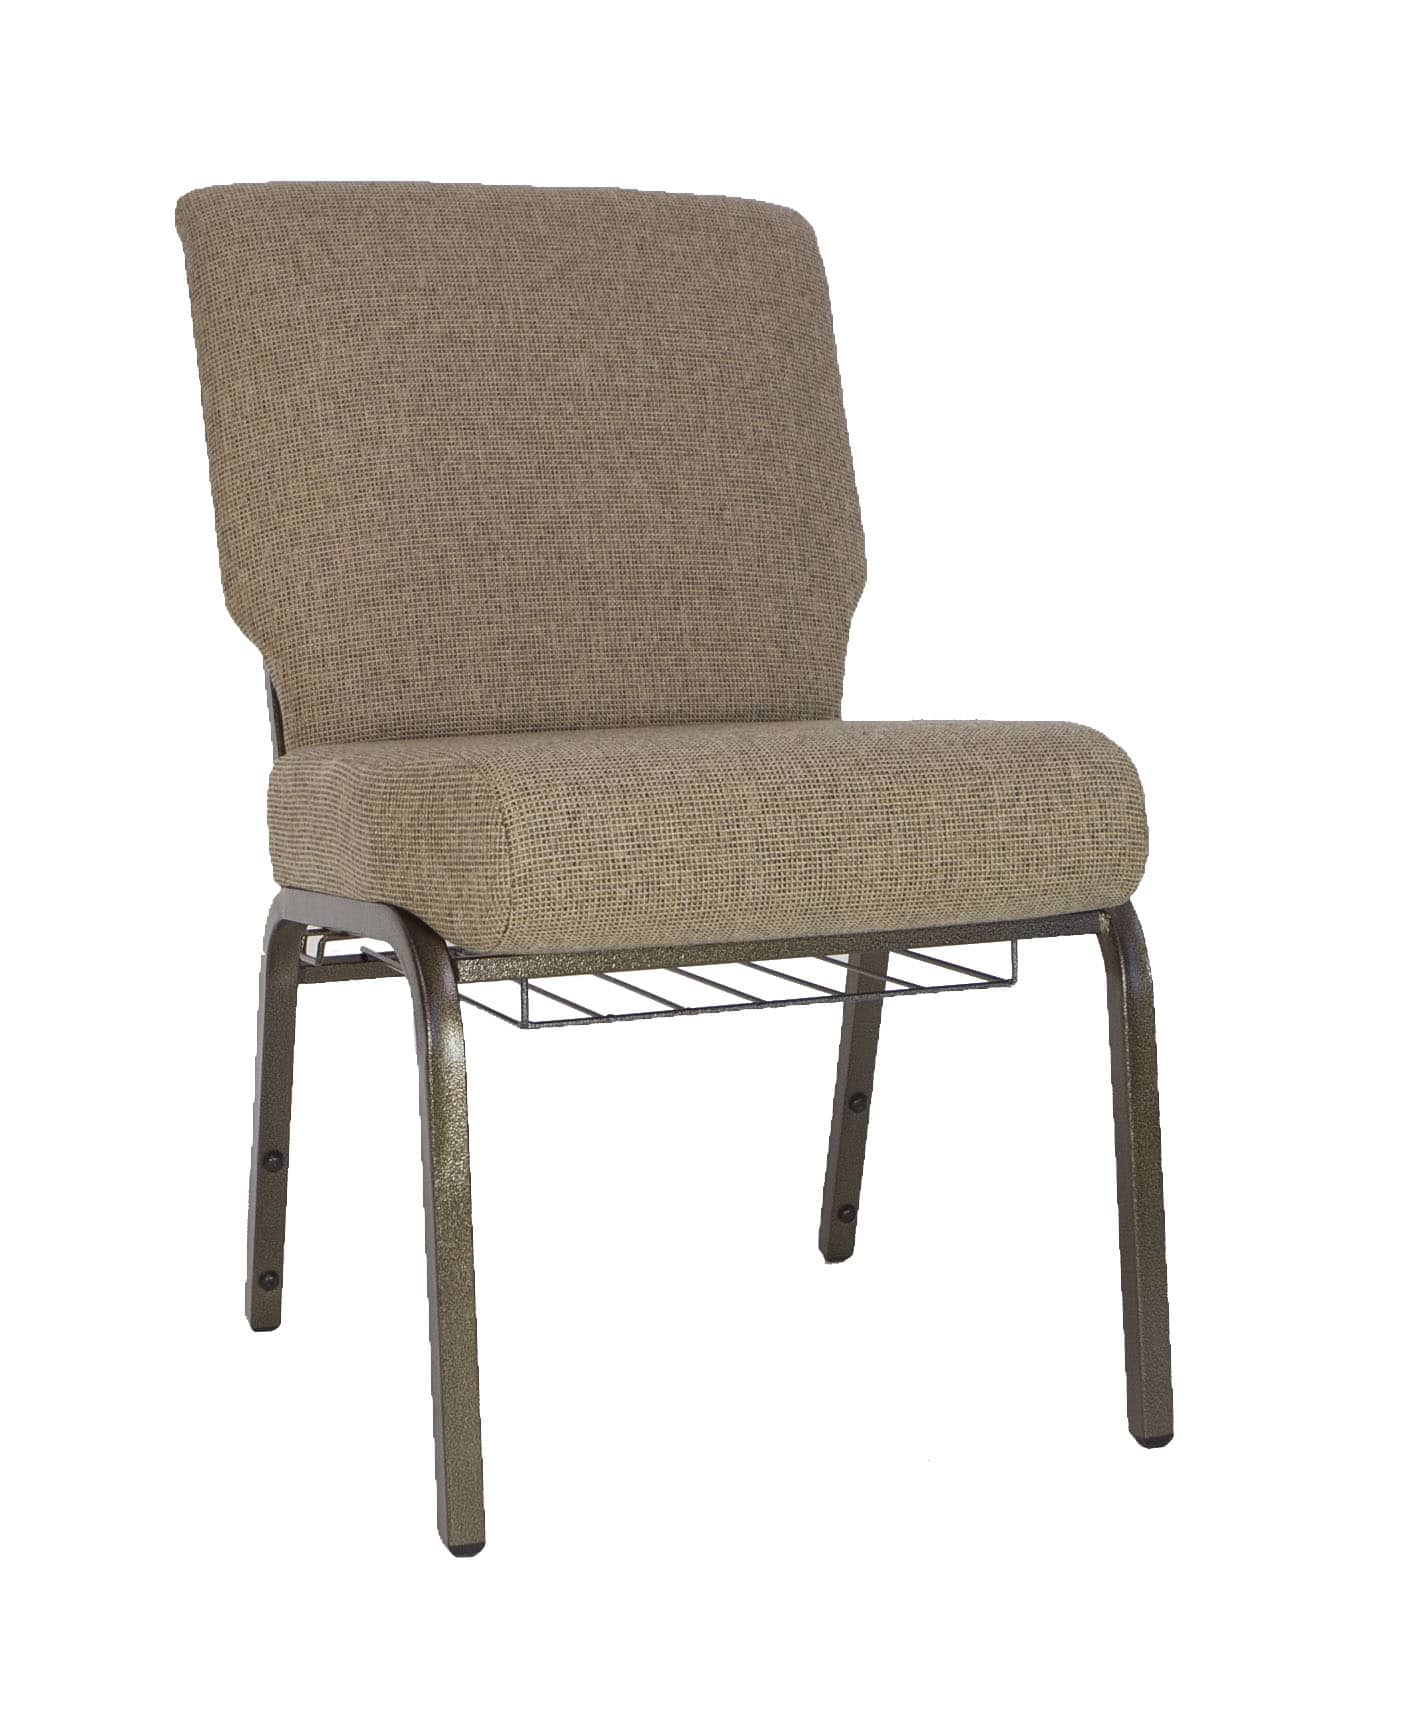 cathedral chairs children s folding argos am cc mixed tan 20 inch padded church chair the